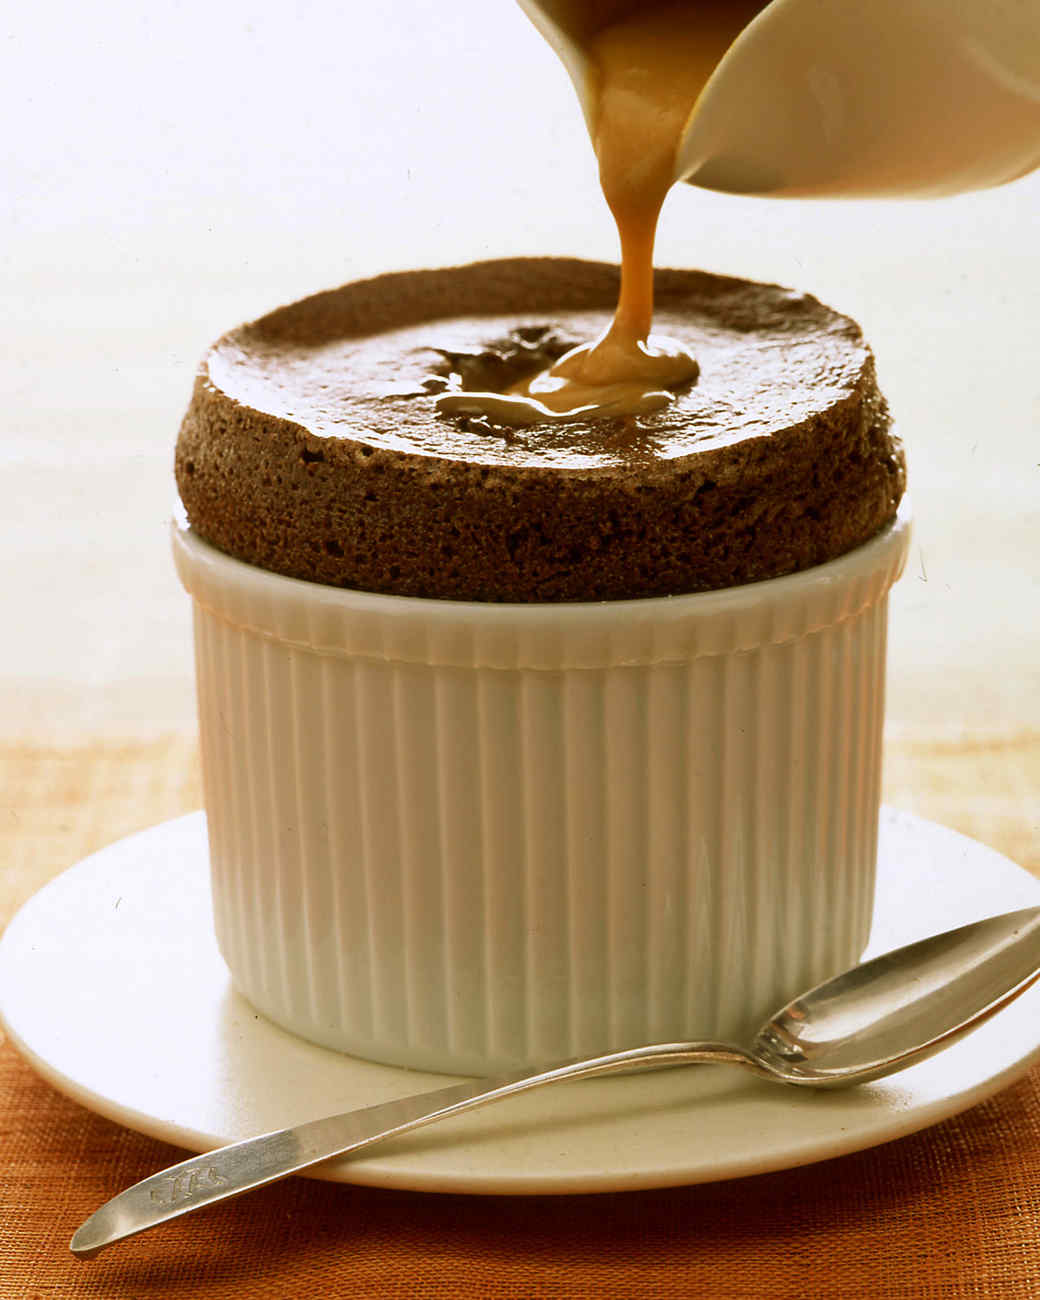 bittersweet chocolate souffles recipe martha stewart. Black Bedroom Furniture Sets. Home Design Ideas